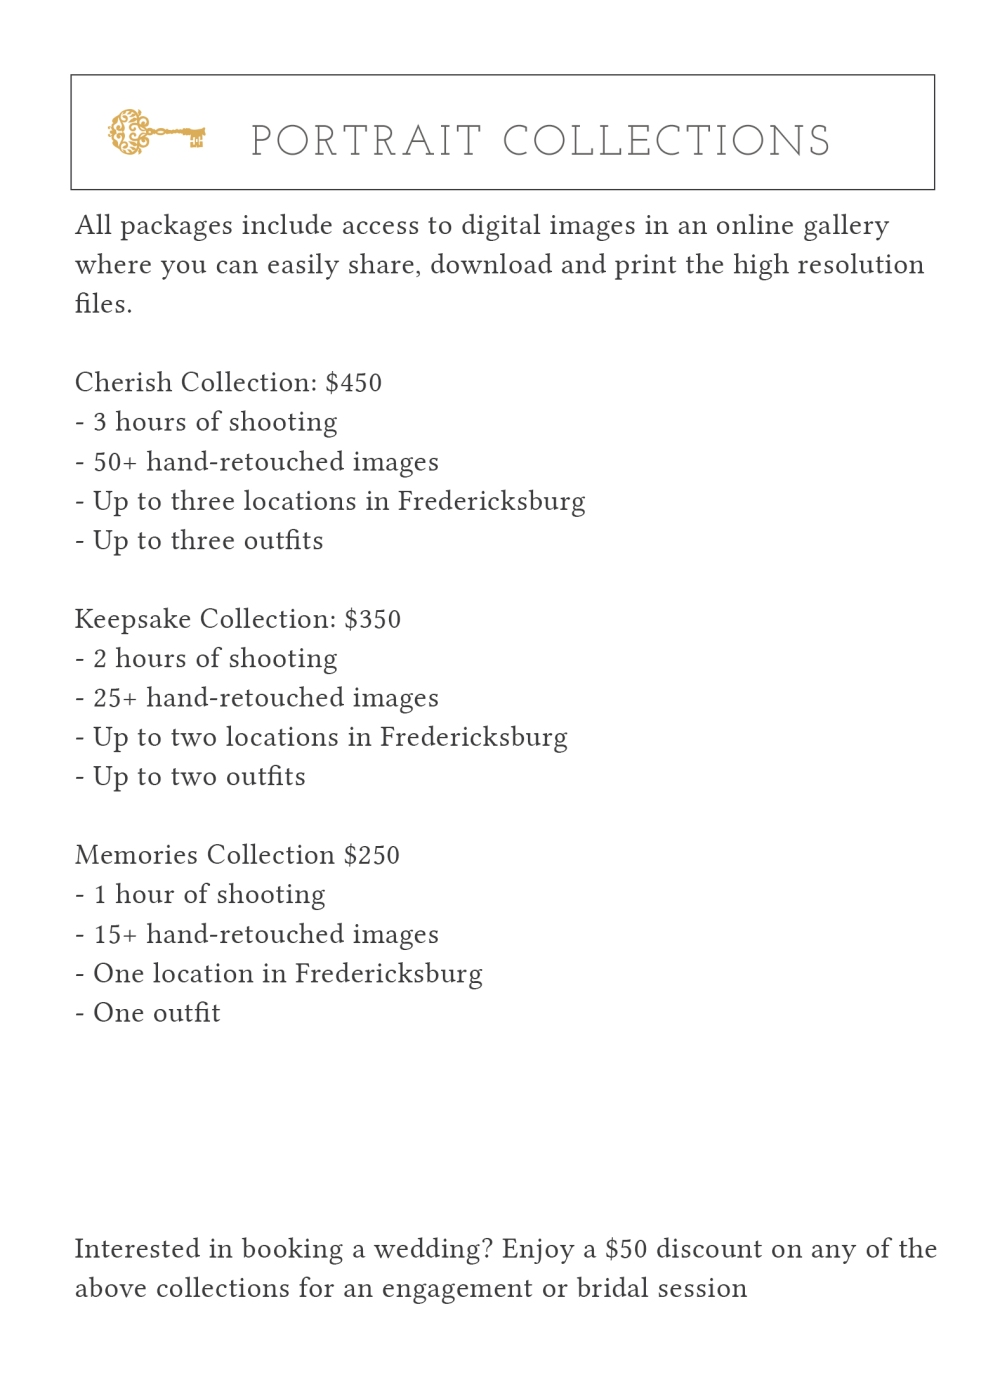 Portrait Collection Pricing_AHP